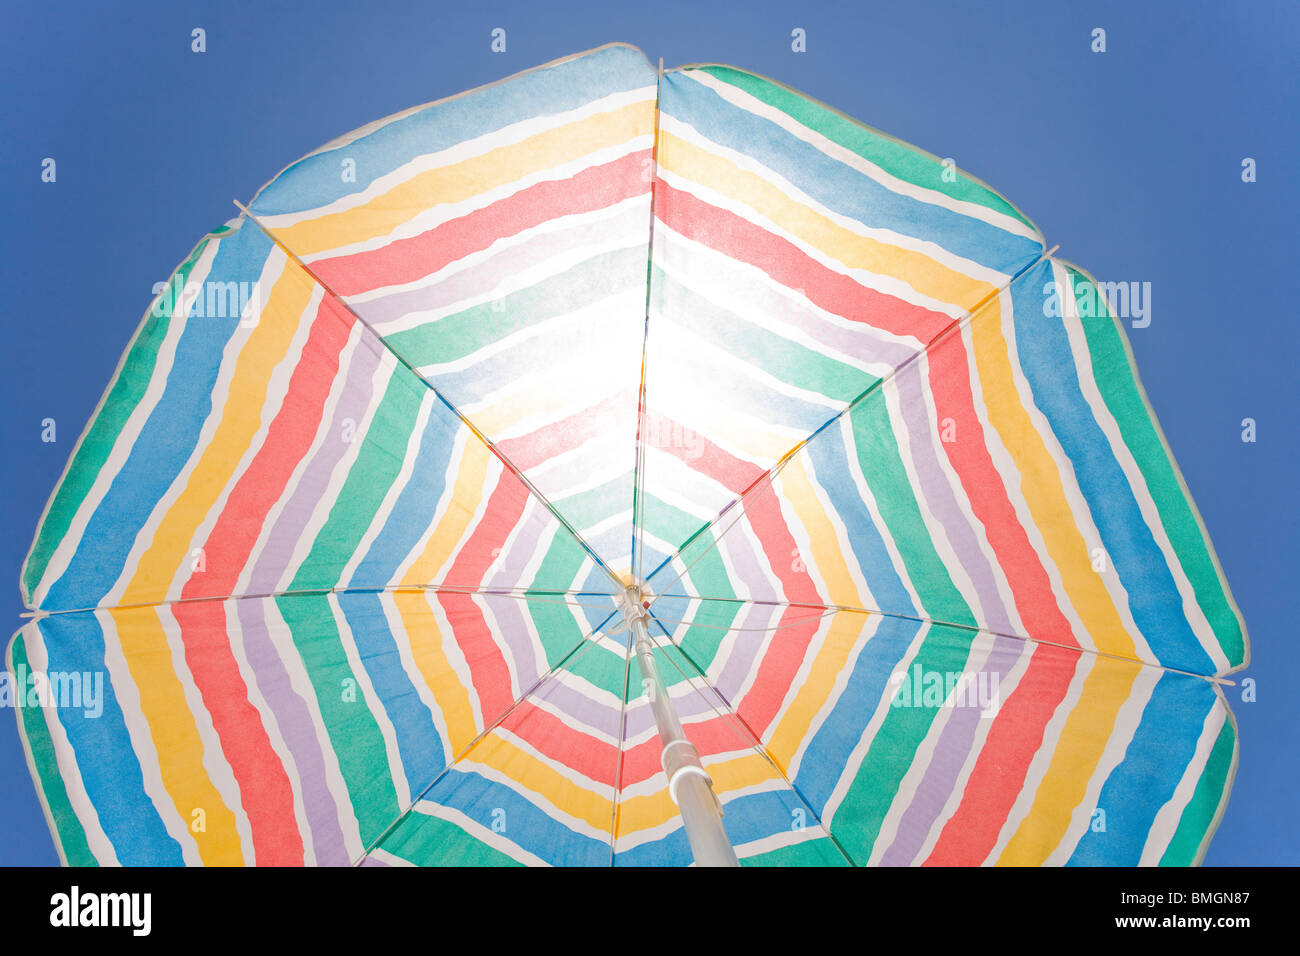 View of the beach from the point of view of a sunbather - Stock Image